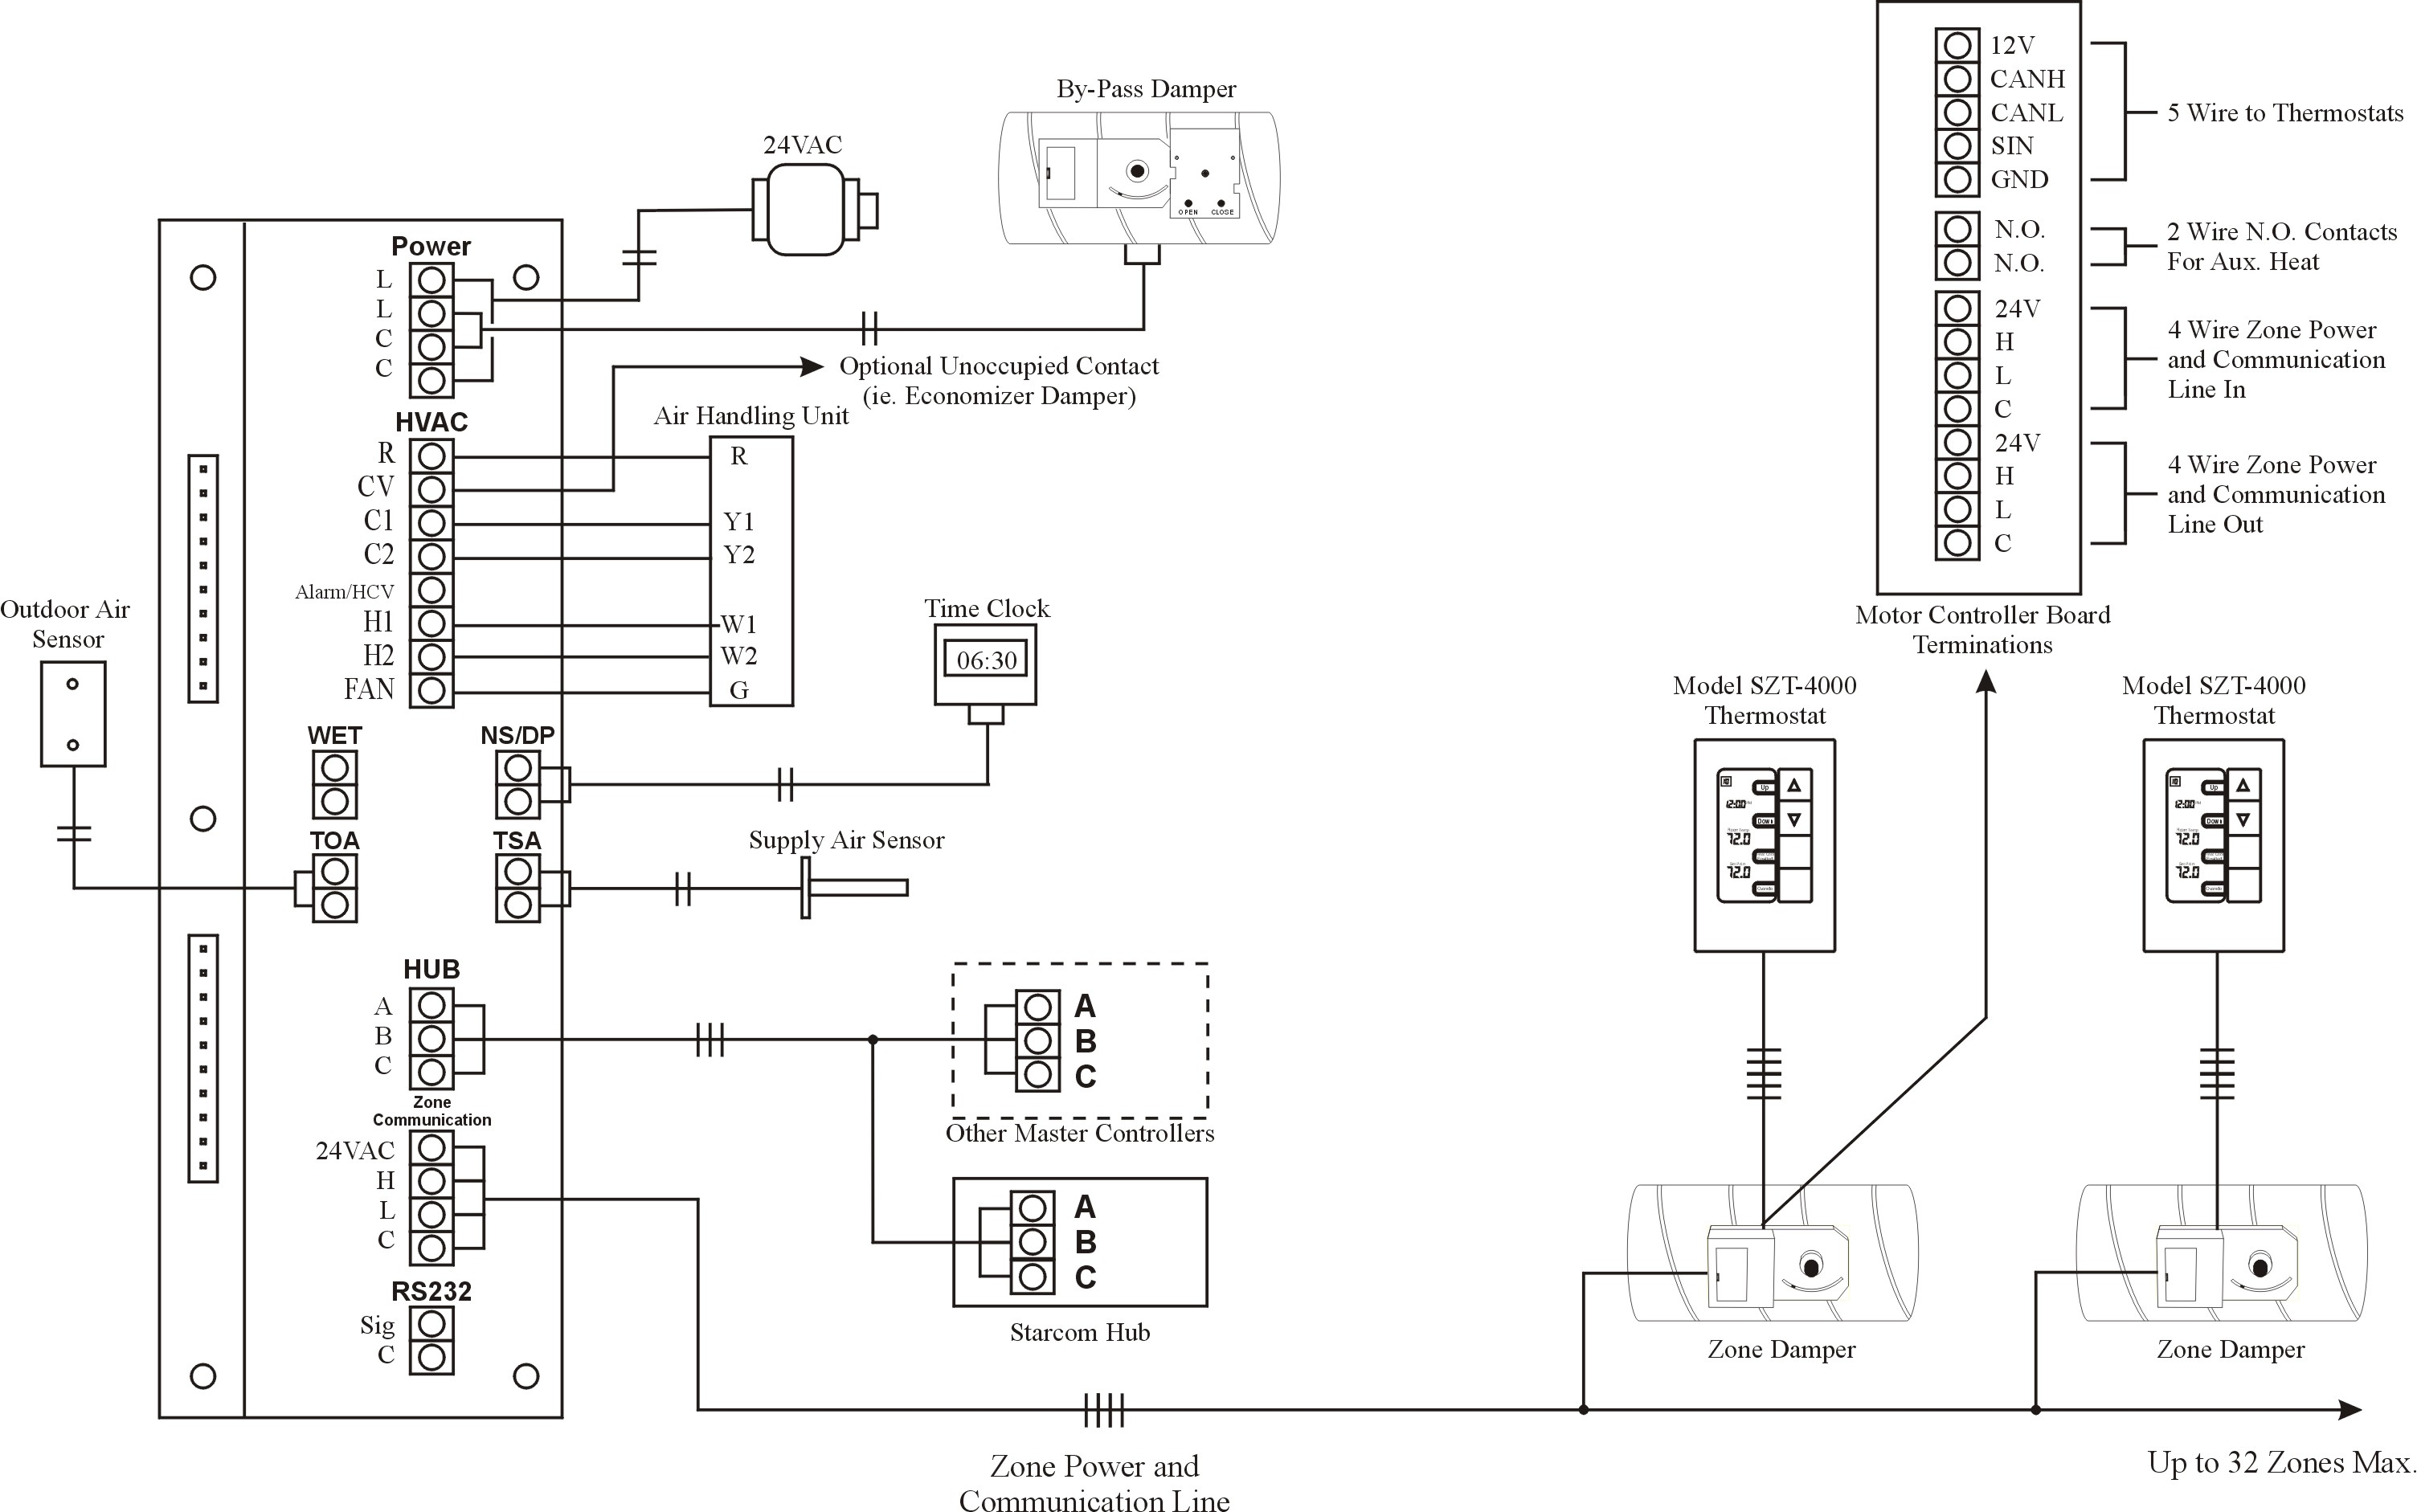 Wiring Diagrams | Zone-All Controls - Phone Wiring Diagram